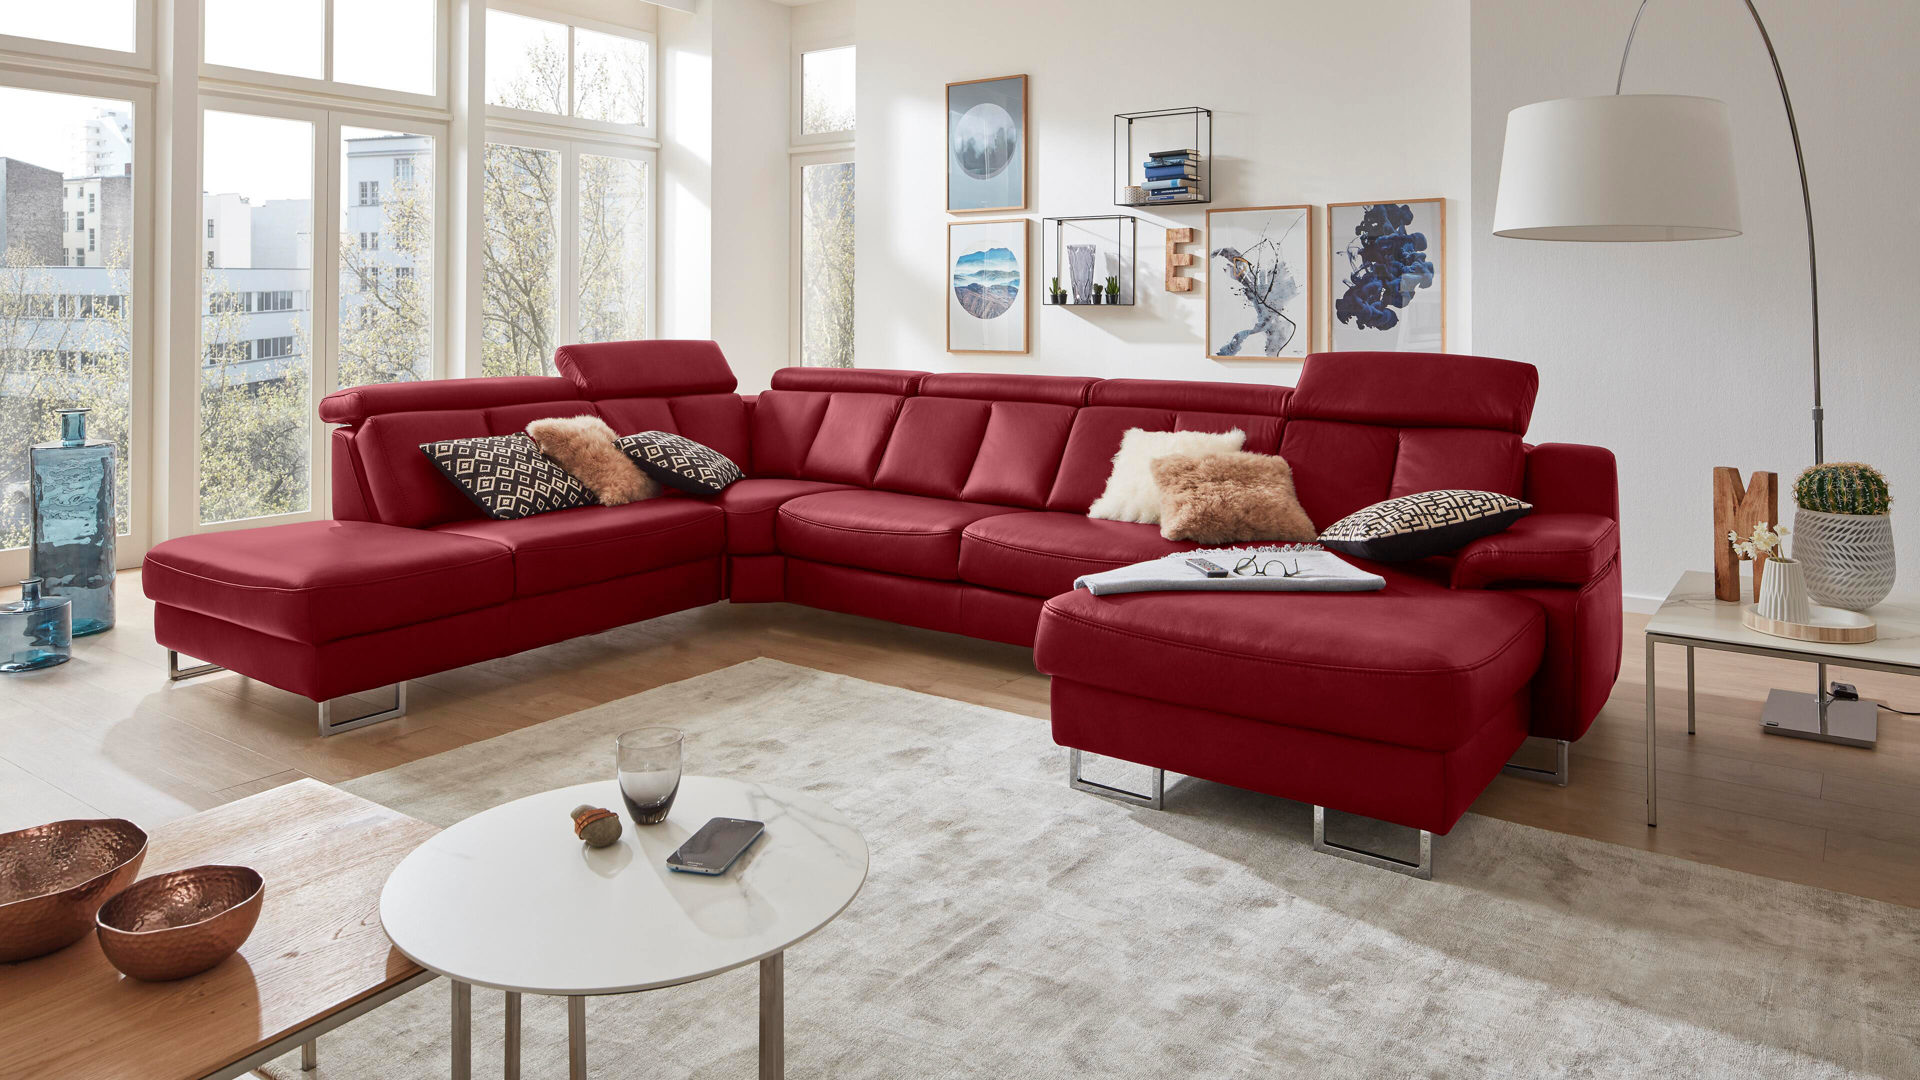 Ecksofa Interliving aus Leder in Rot Interliving Sofa Serie 4050 – Wohnlandschaft rotes LongLife-Leder Cloudy & Chromfüße – Stellfläche ca. 261 x 368 cm